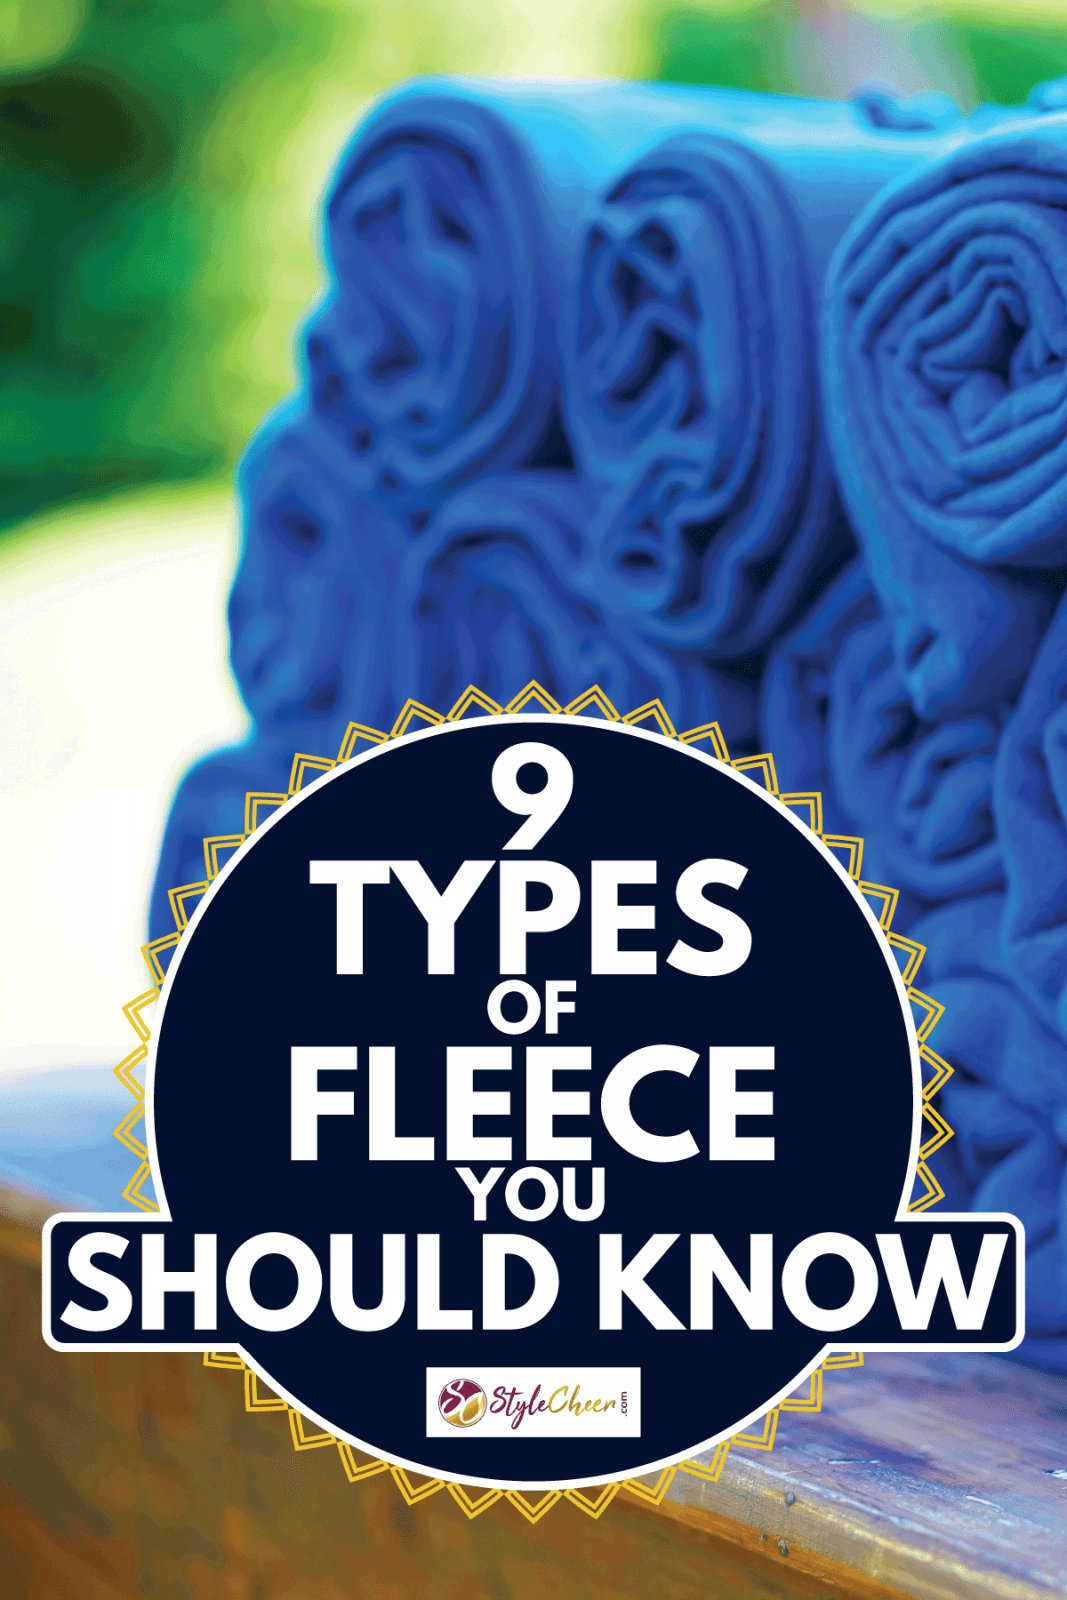 a set of rolled warm blue blankets at an open air party, 9 types of fleece you should know